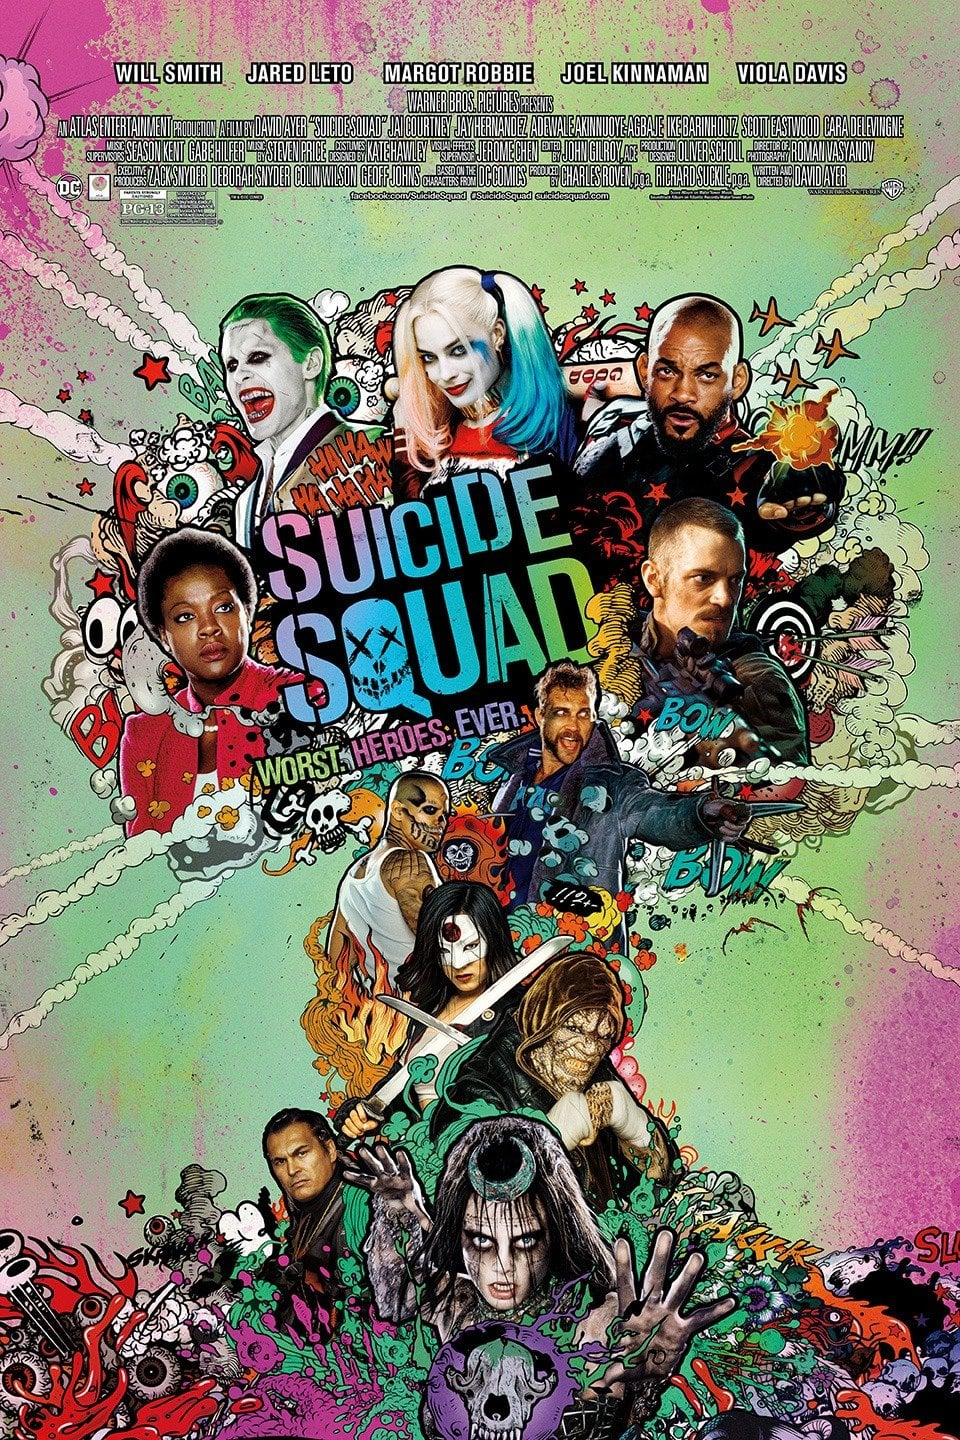 Man of Steel (Blu-ray) + $8 Movie Money for Suicide Squad Movie Ticket  $9 & More + Free Store Pickup